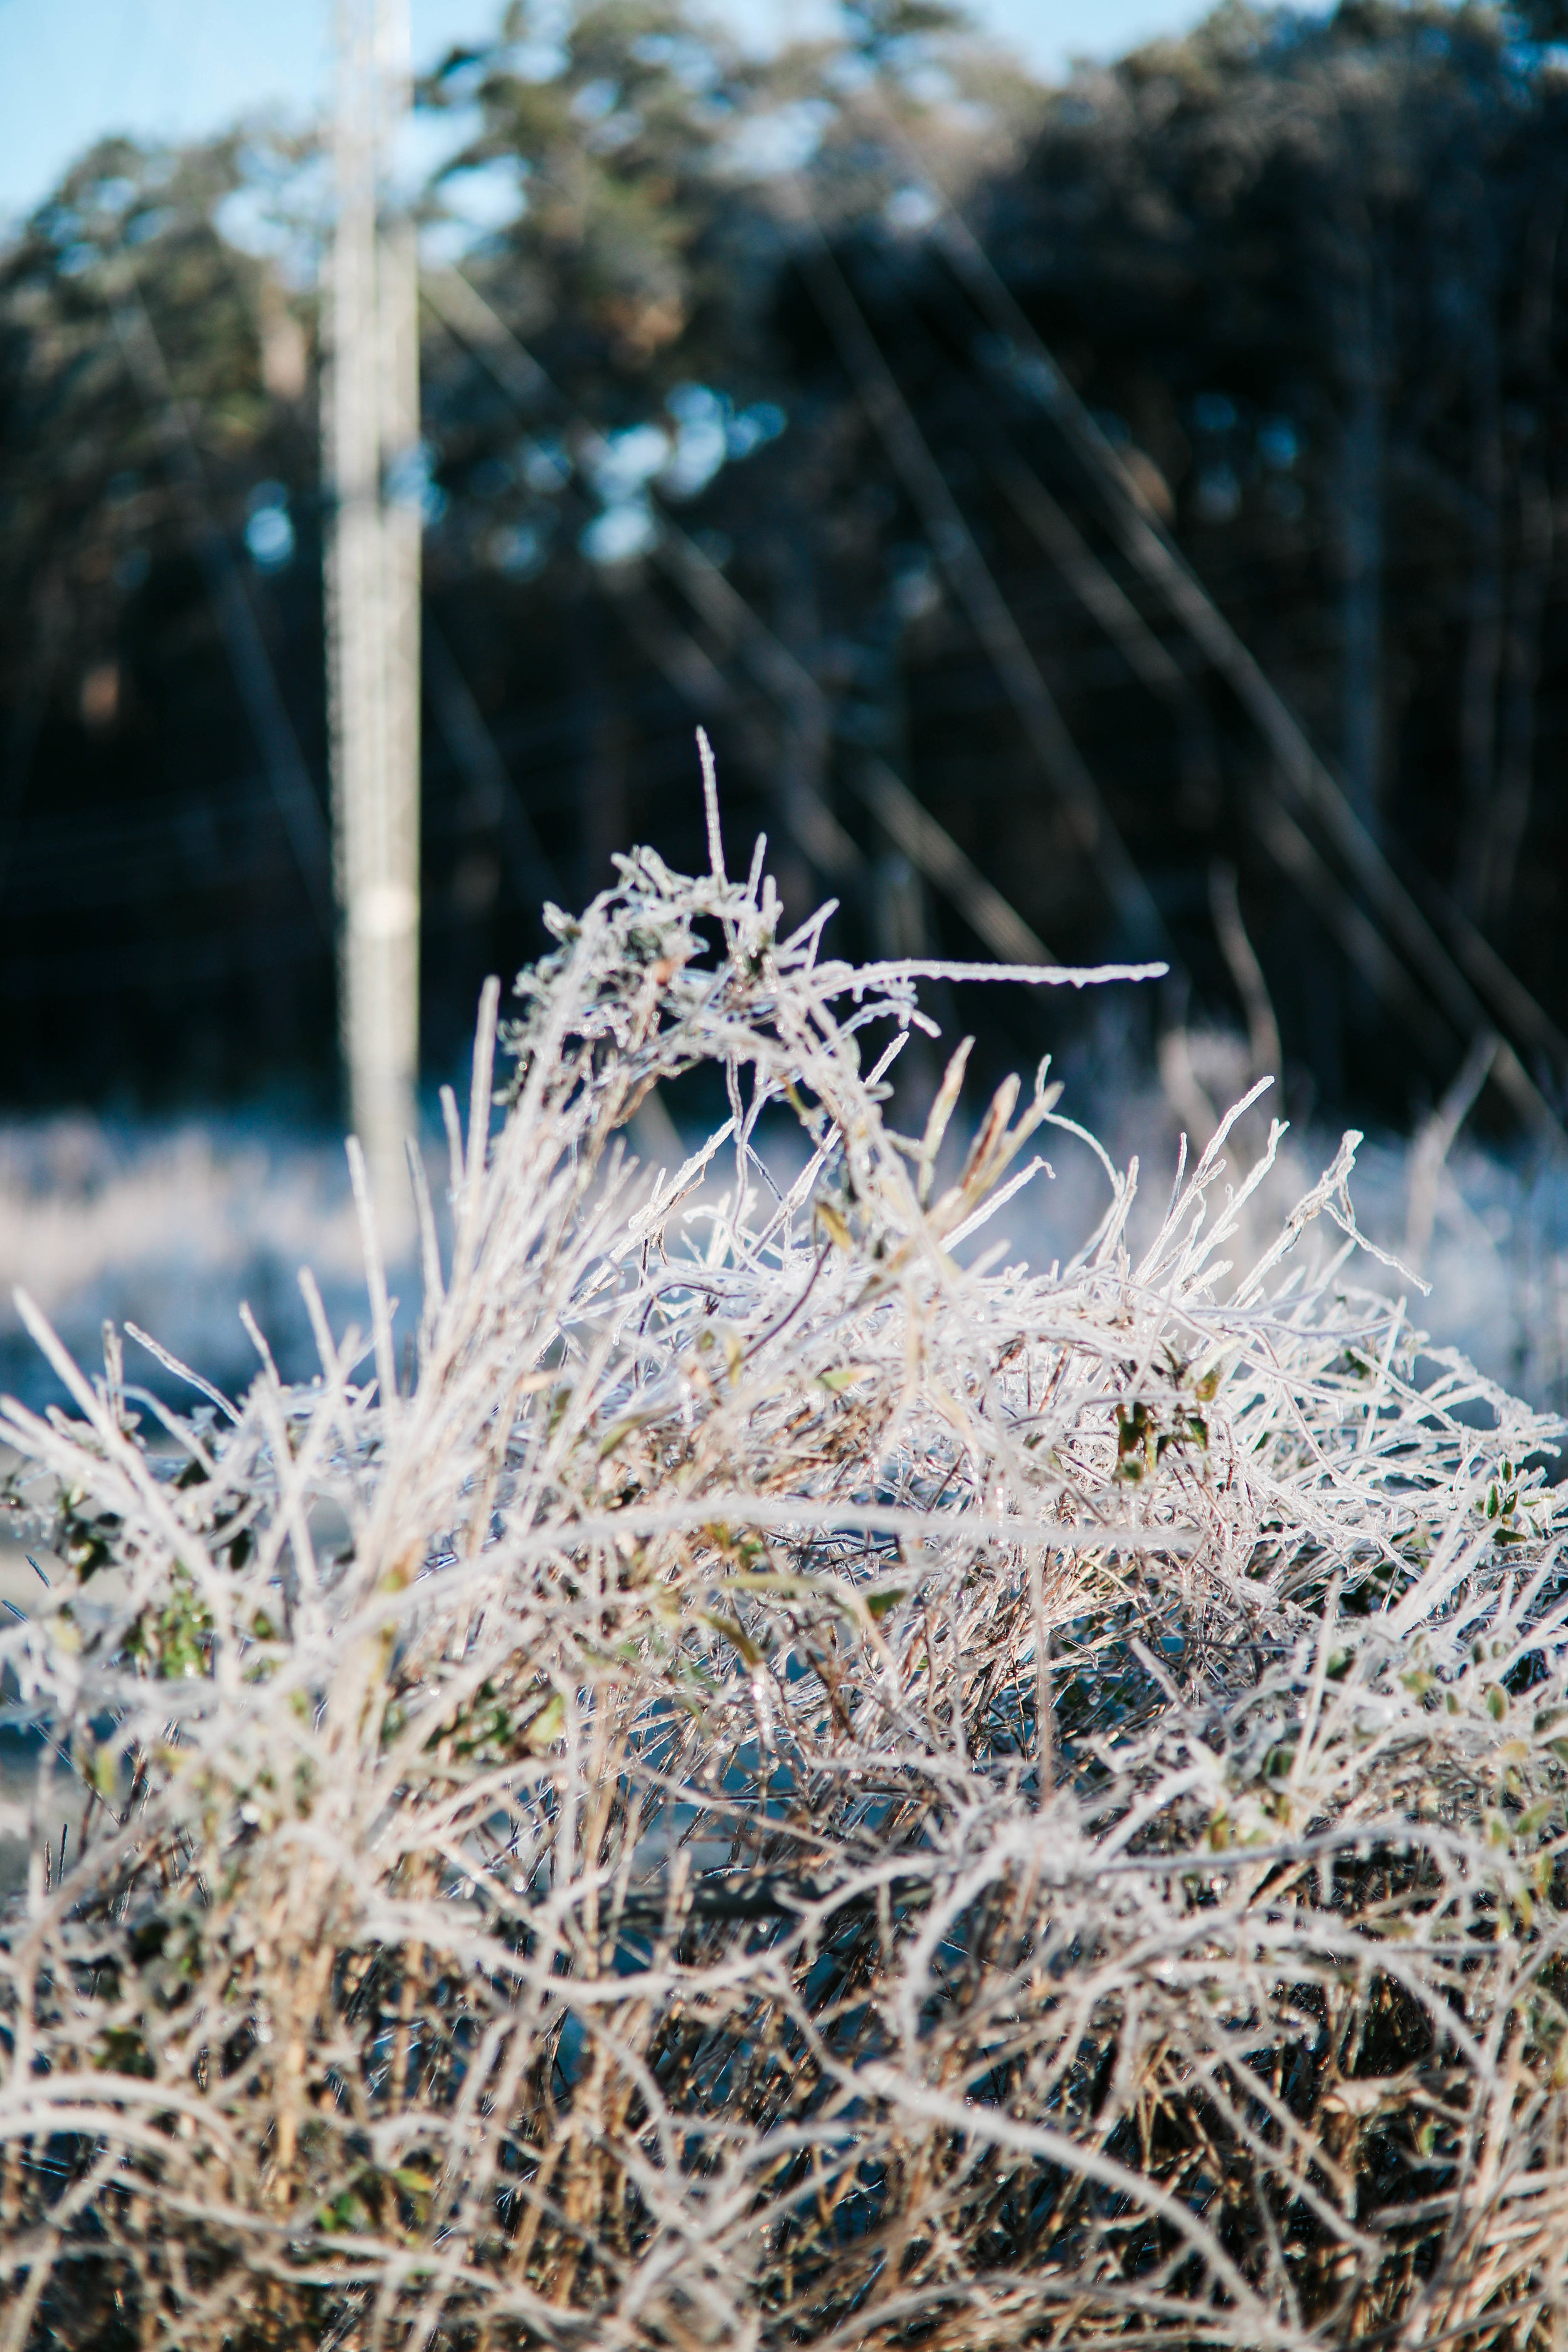 Tall grass is covered in ice on the side of the road